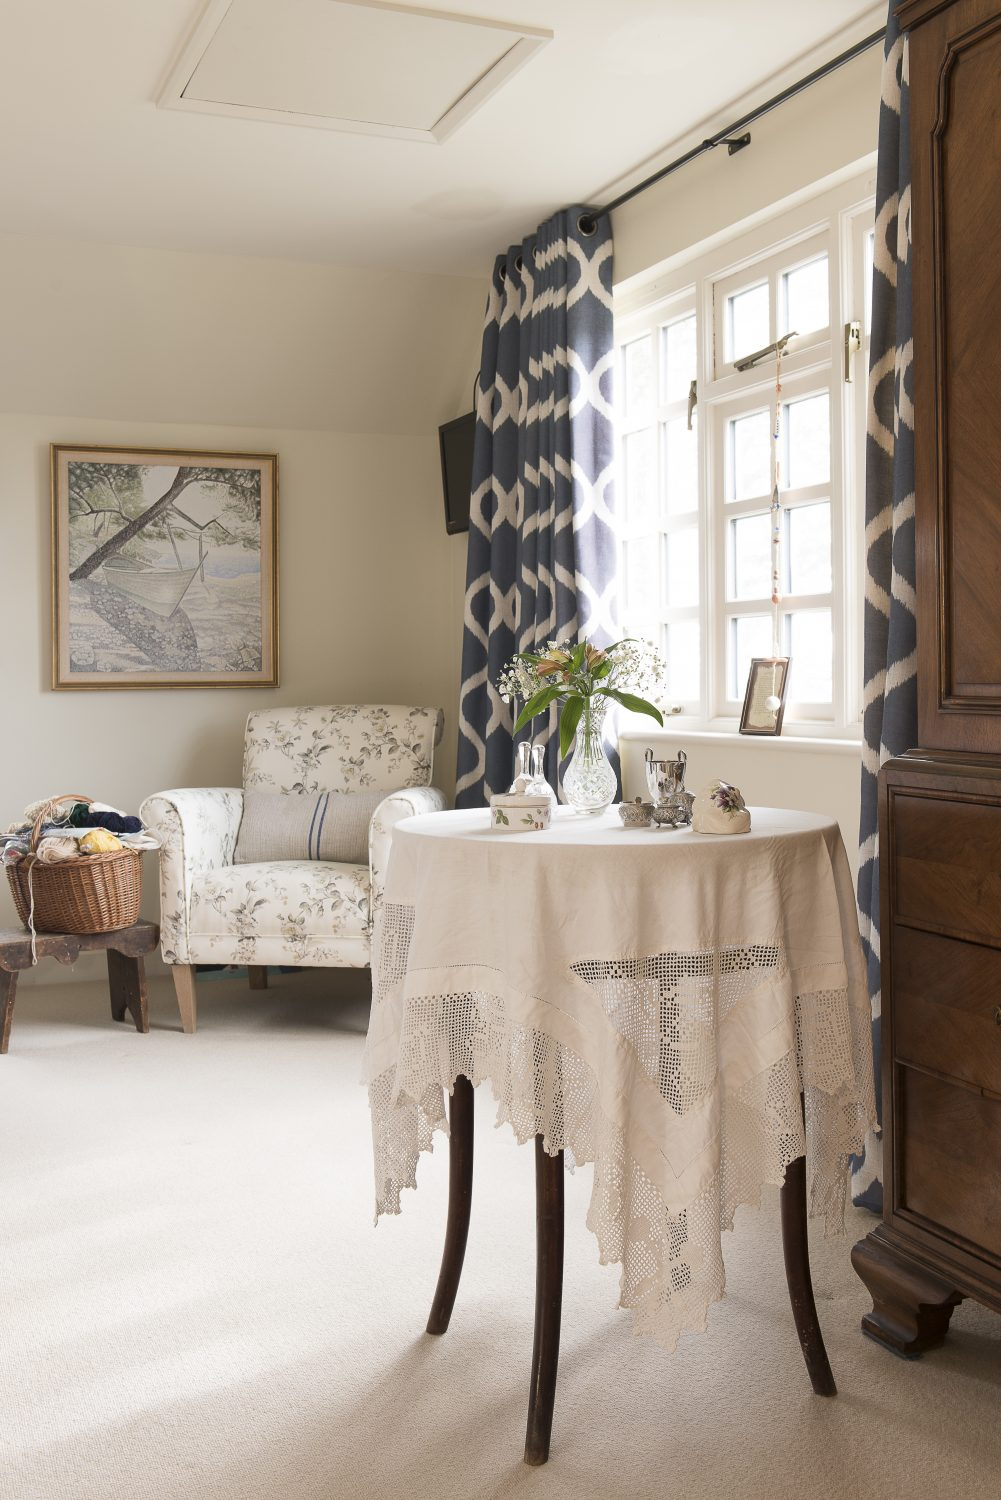 Ally has used the same curtain fabric upstairs in a different colourway. The chair is a Dunelm find, with one of Ally's signature cushions covered in fabric from an old grain sack. Ally urged Jo to buy the beautiful armoire to give the room a focal point.